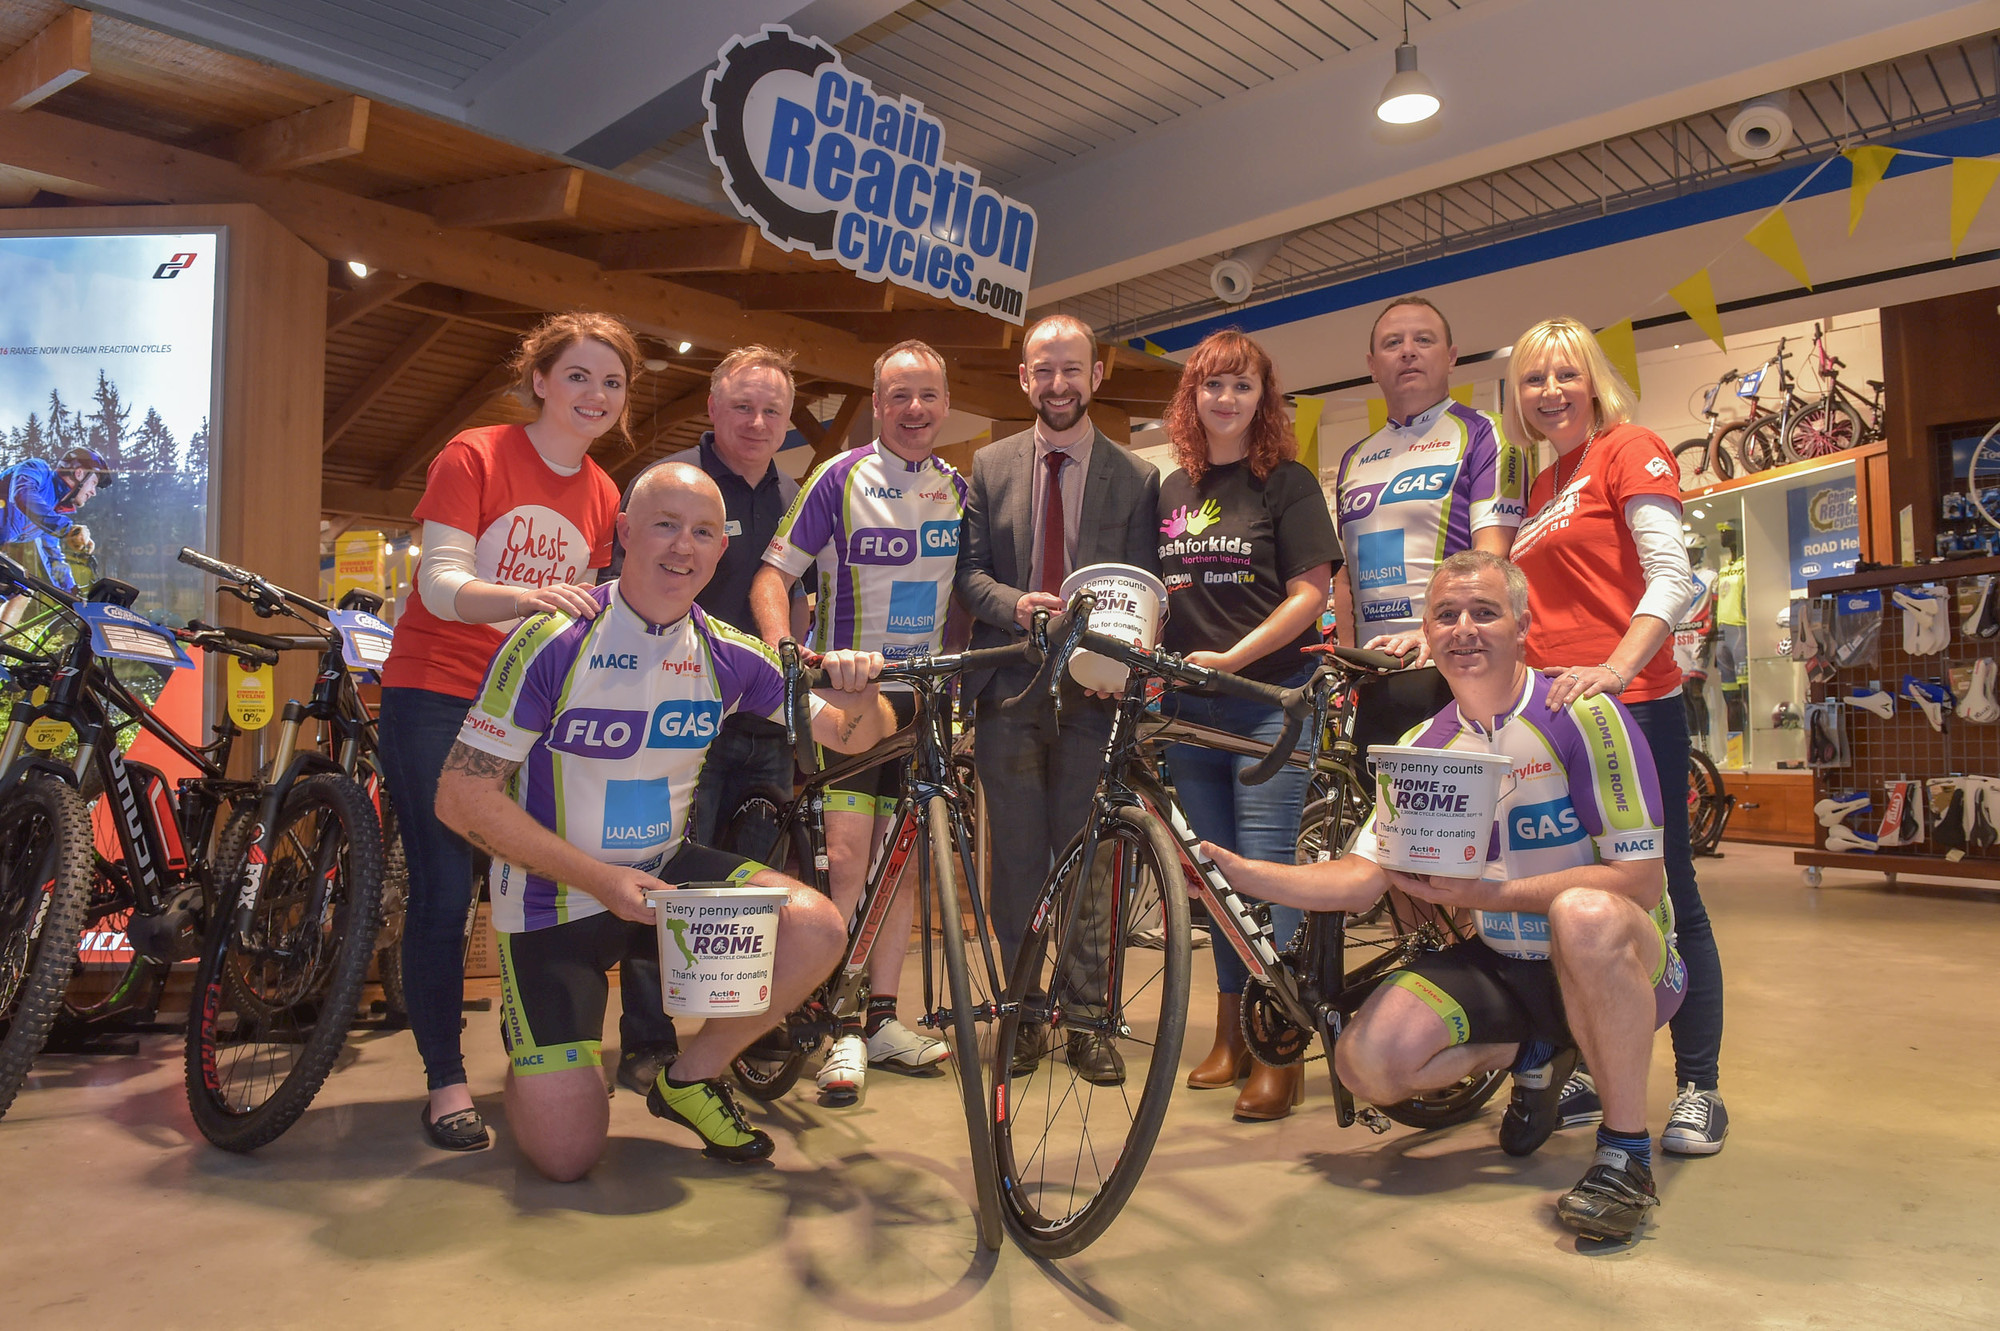 Flogas Distributor takes on Challenge of a Lifetime for Three Local Charities